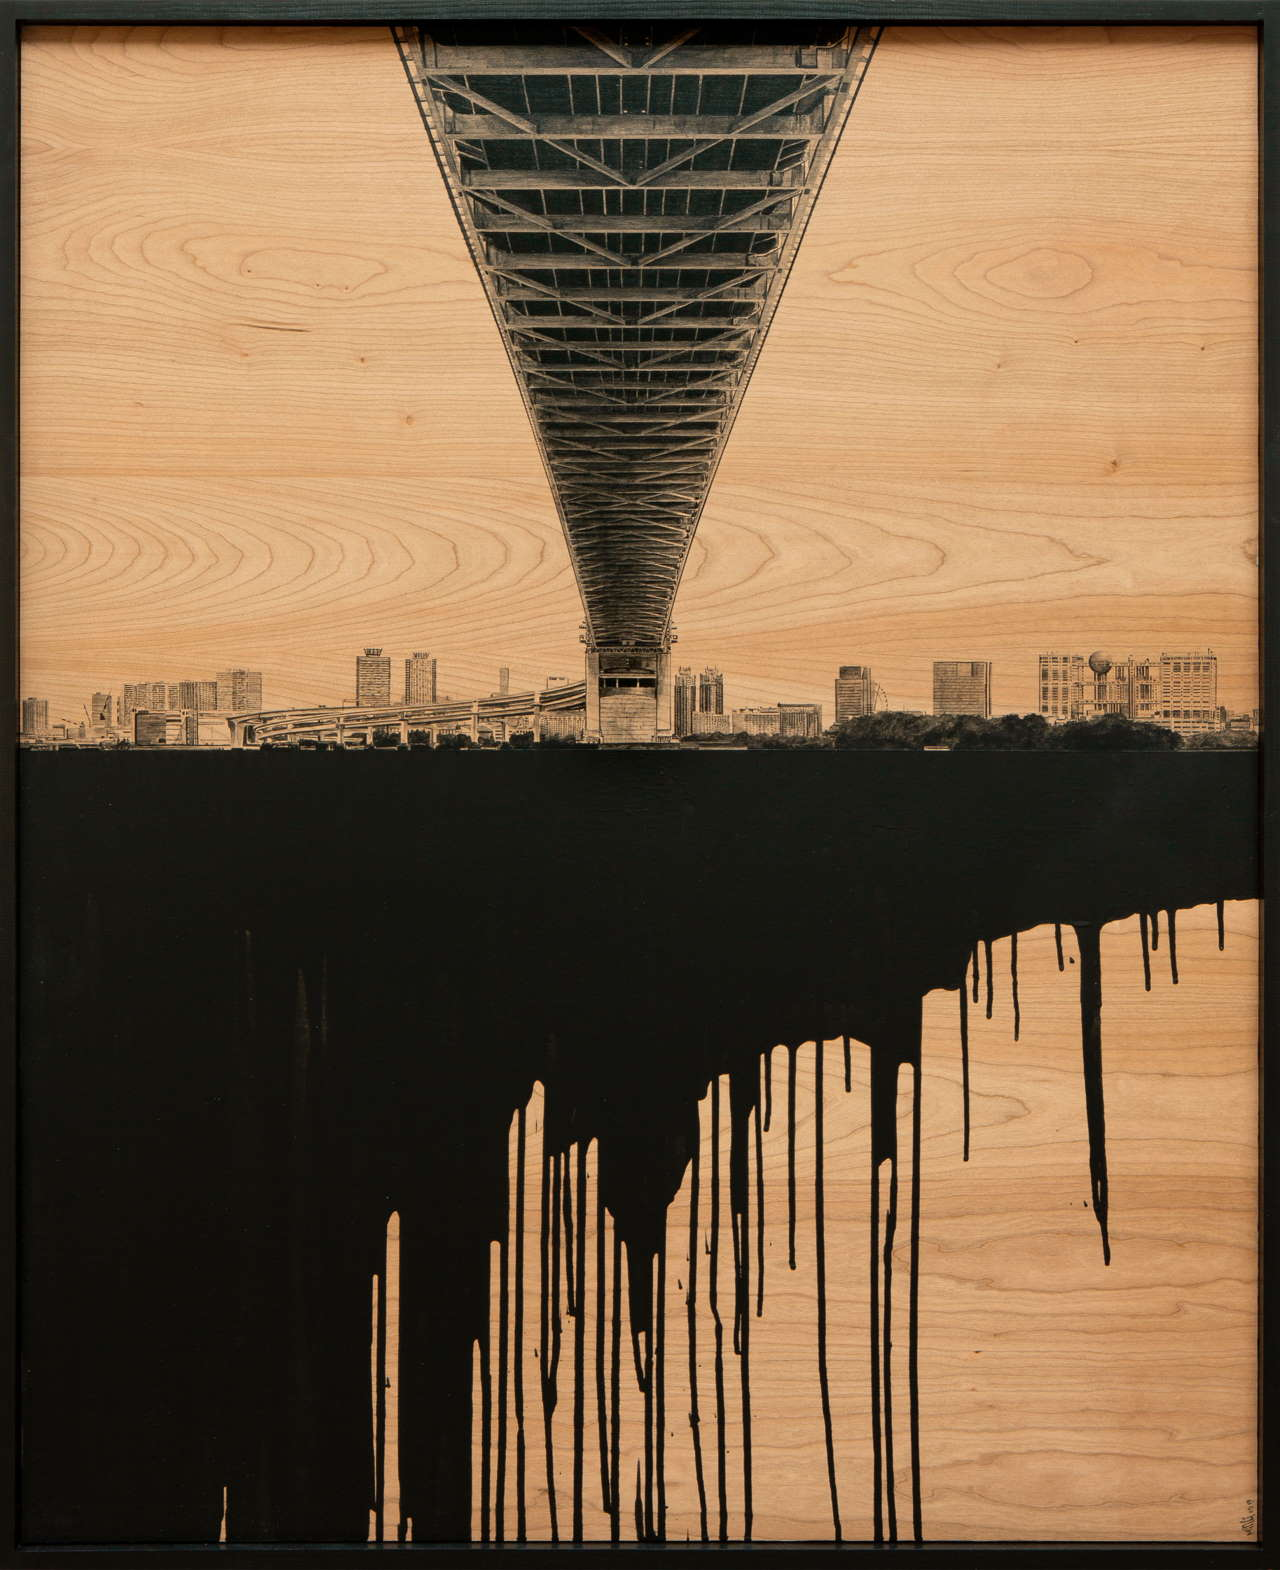 Laurent Minguet, Dark side of Tokyo, 2019. Acrylic on cherrywood panel, 98 x 120 cm. © Laurent Minguet.